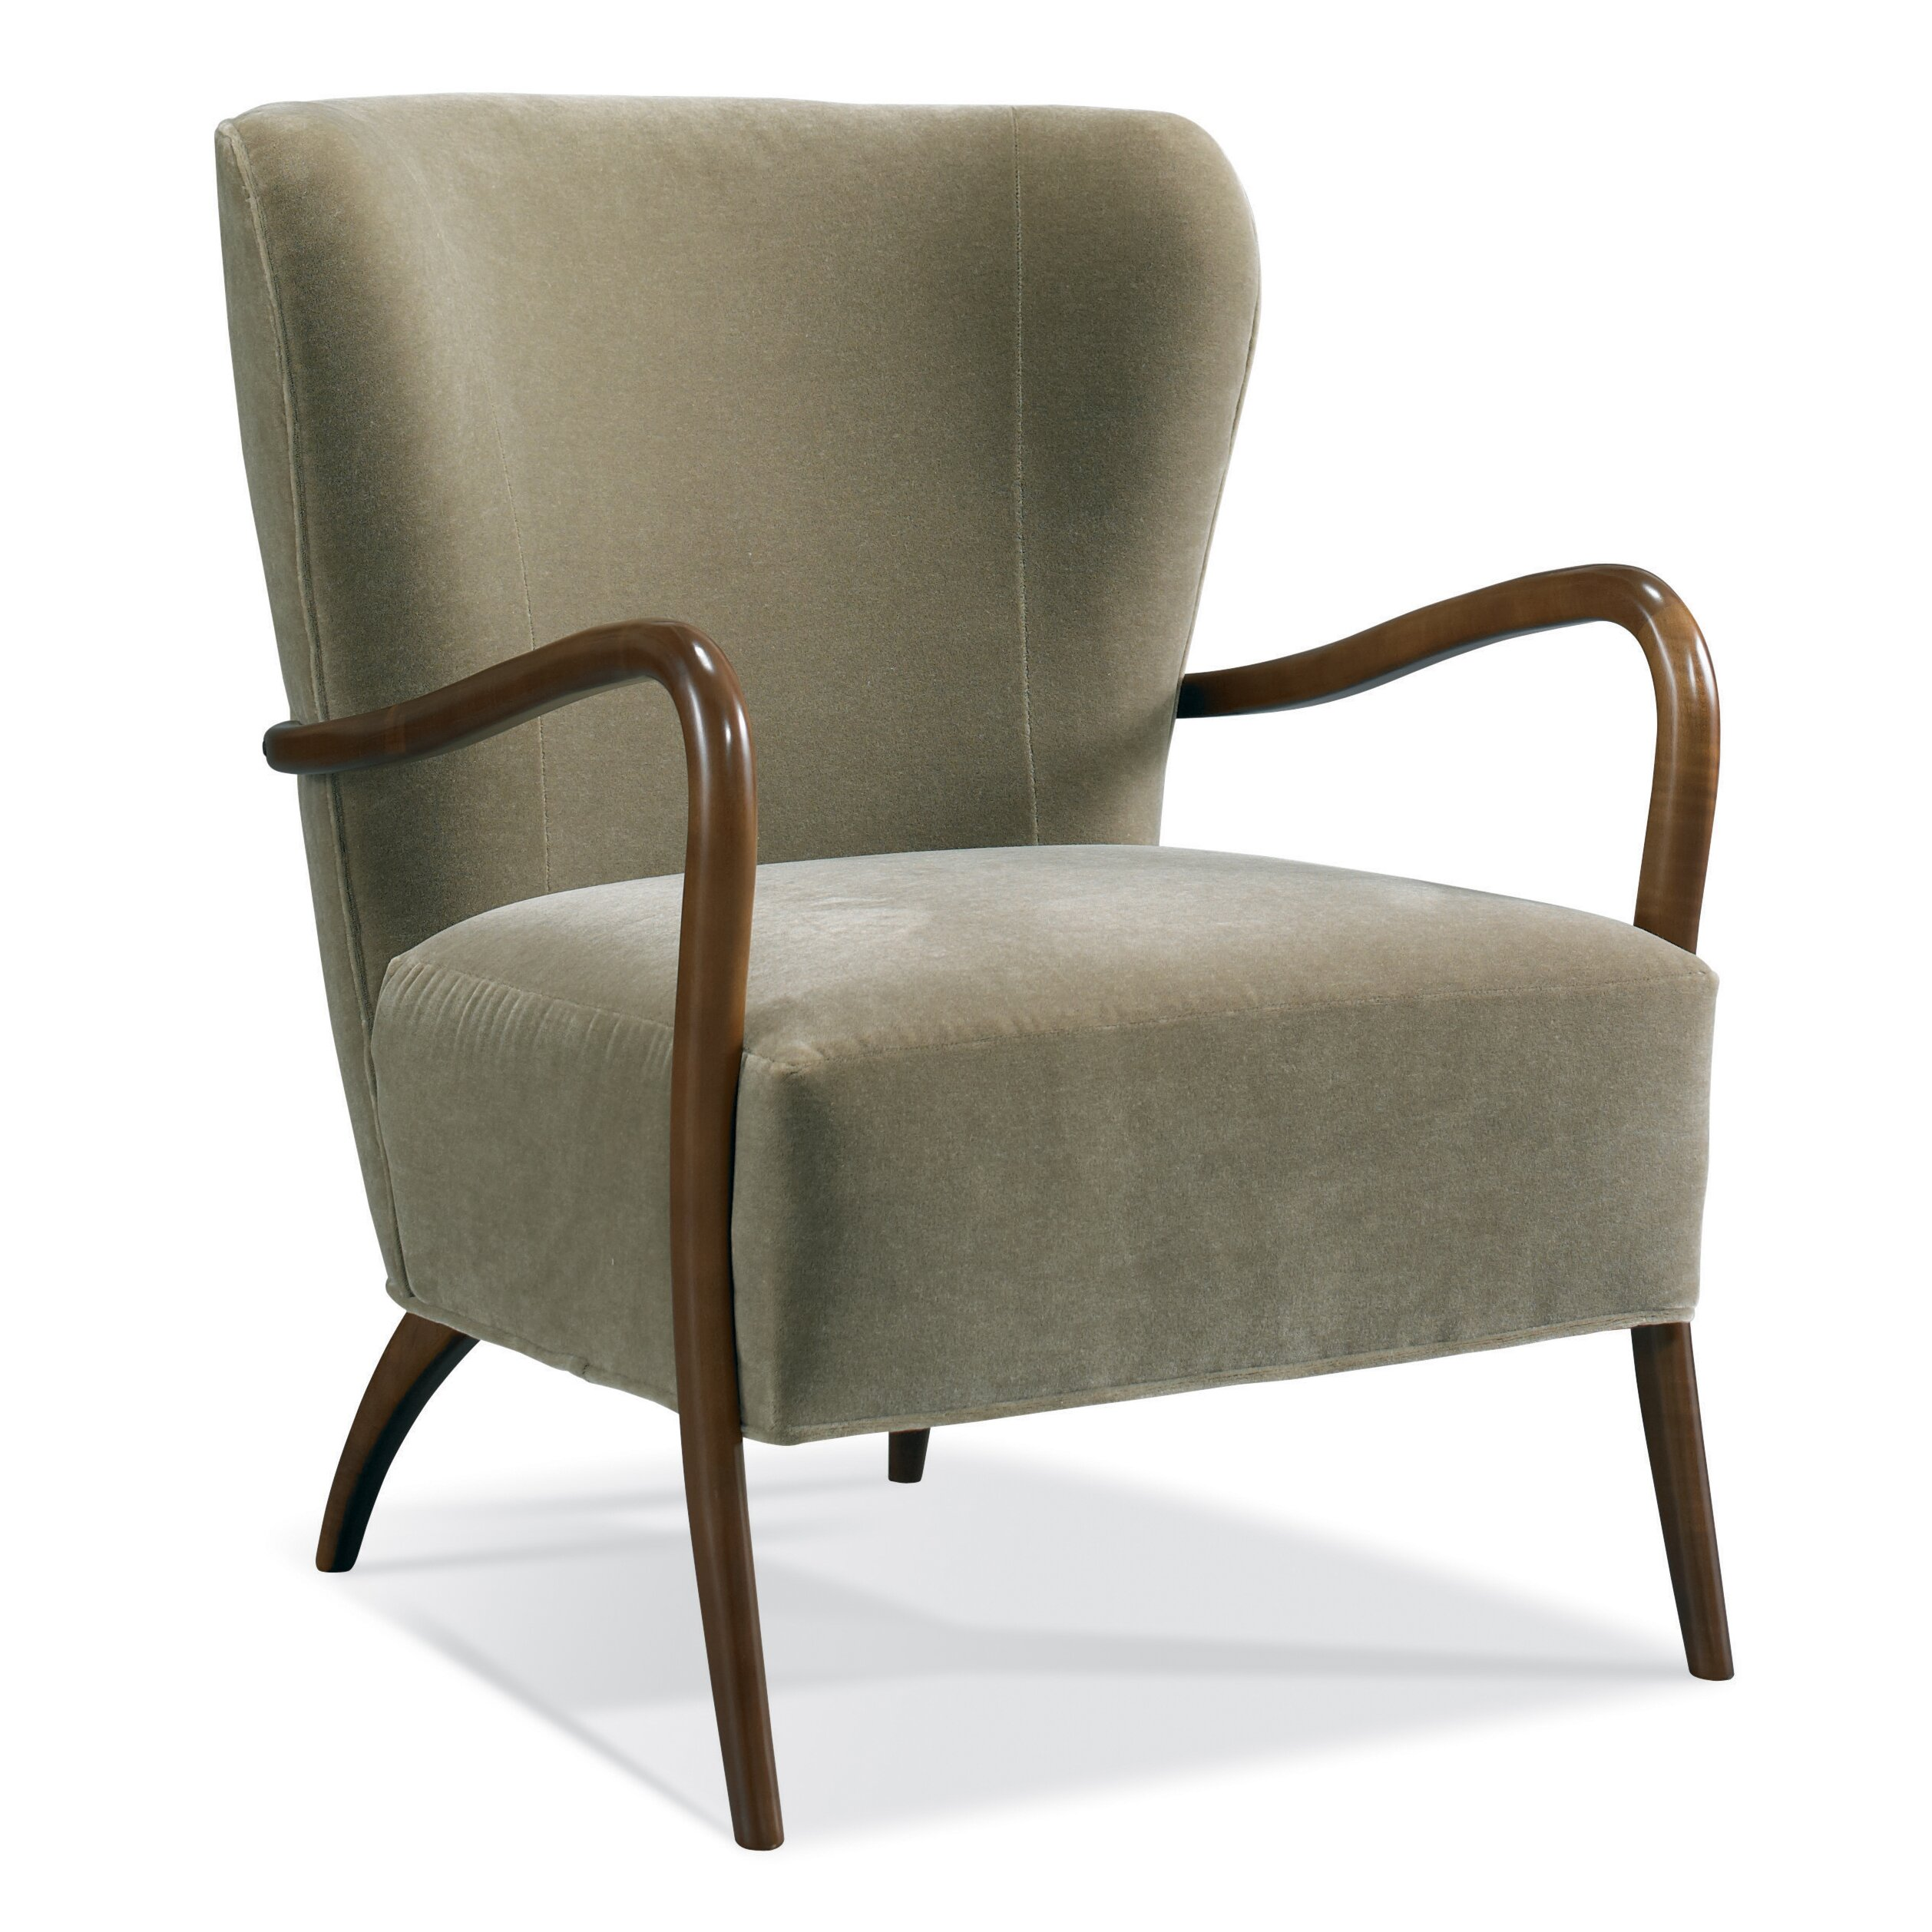 Precedent Furniture Fletcher Arm Chair  Perigold